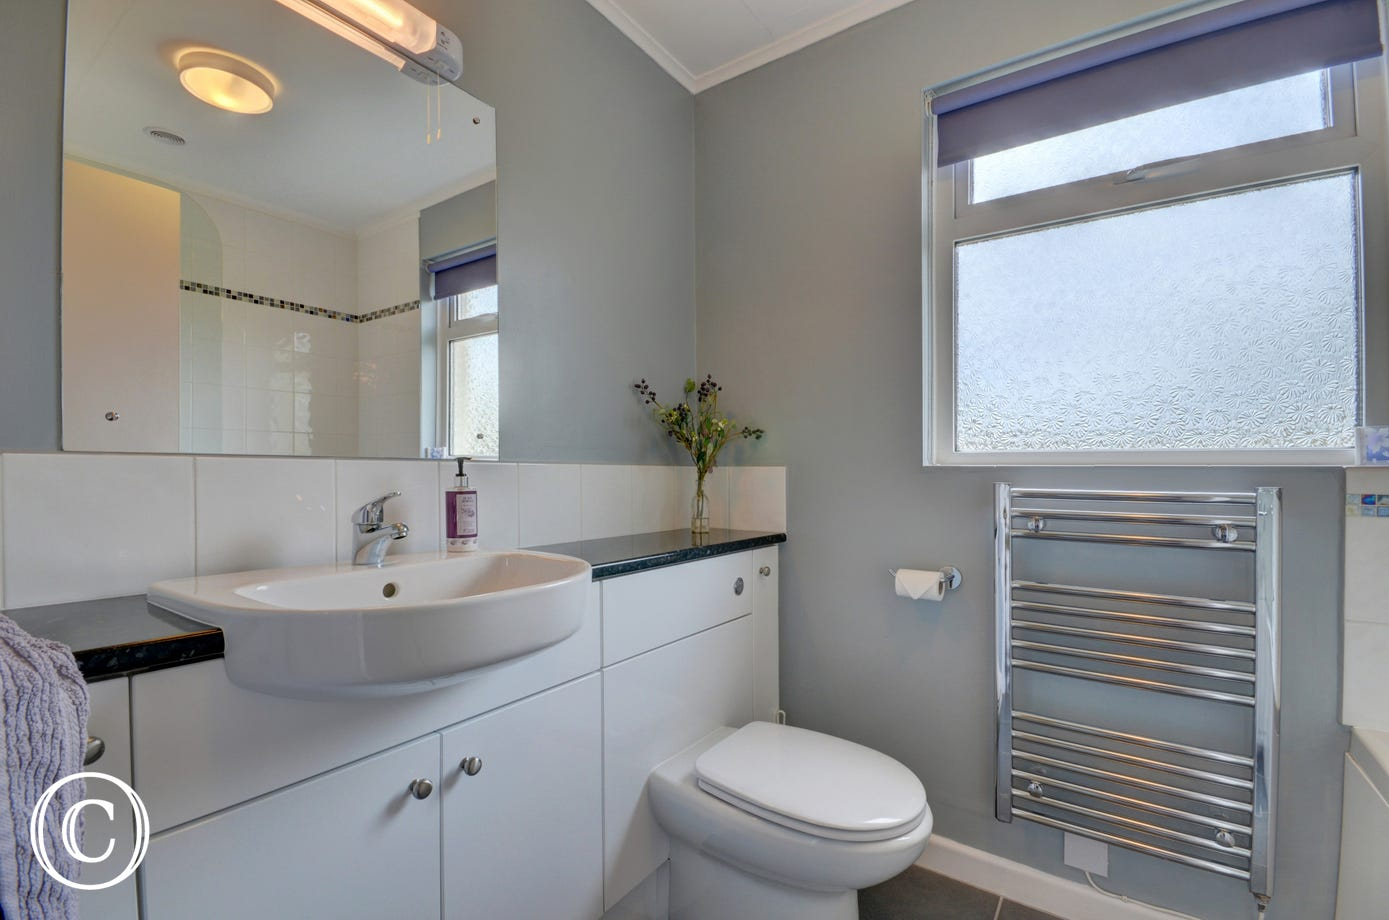 Good-sized bathroom with shower over bath